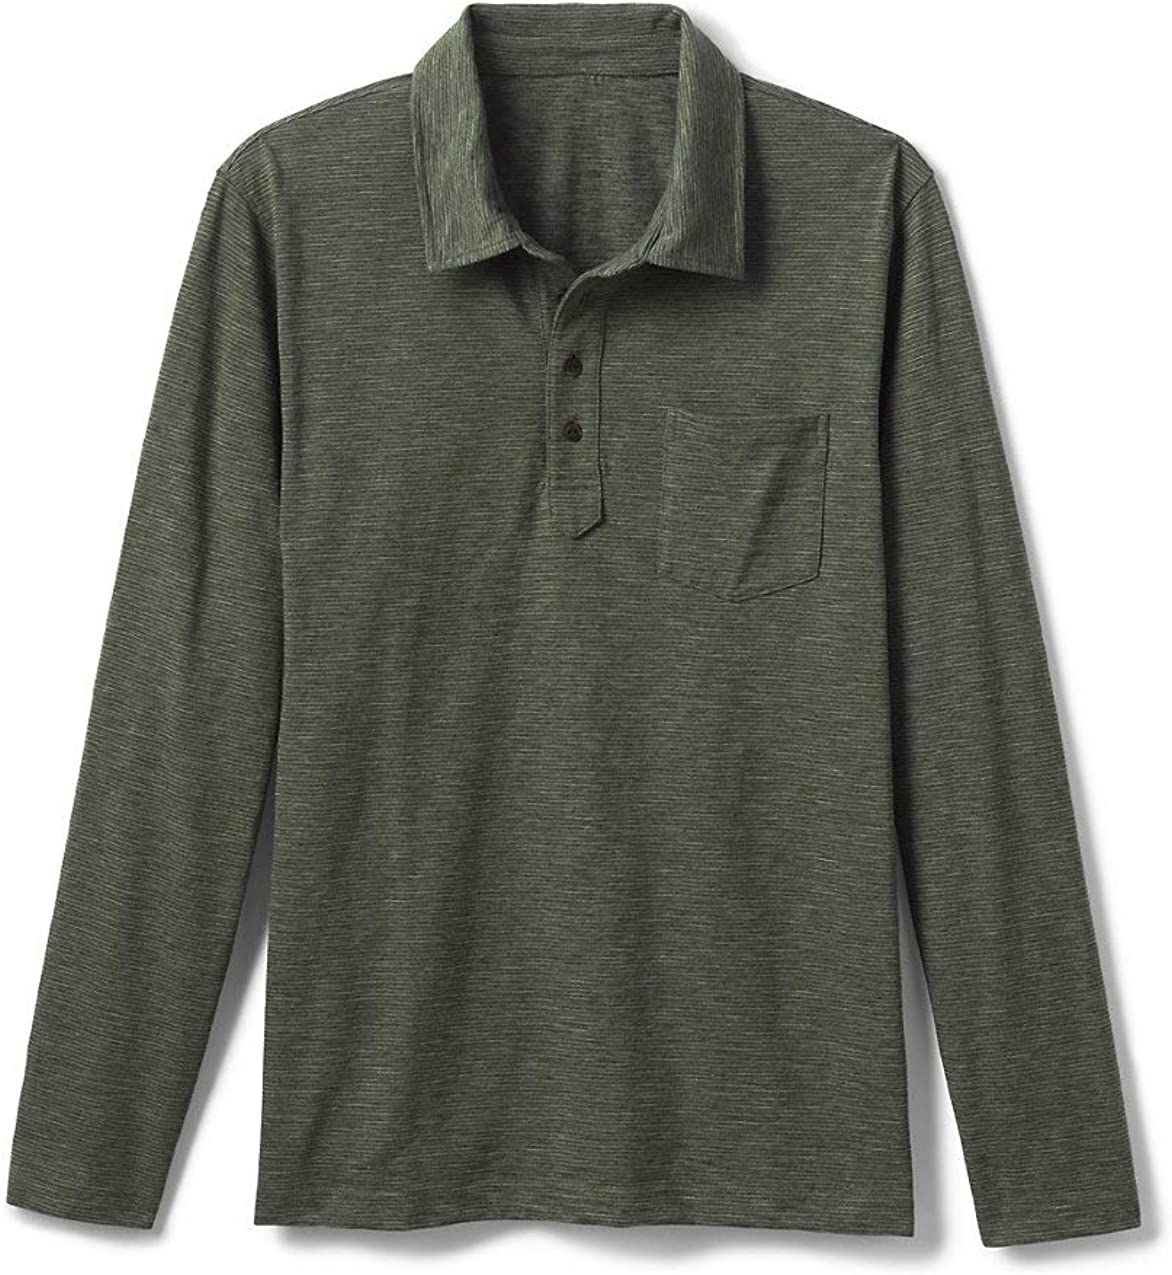 Lands' End 55% OFF Men's Slub Max 70% OFF Long with Shirt Polo Pocket Sleeve